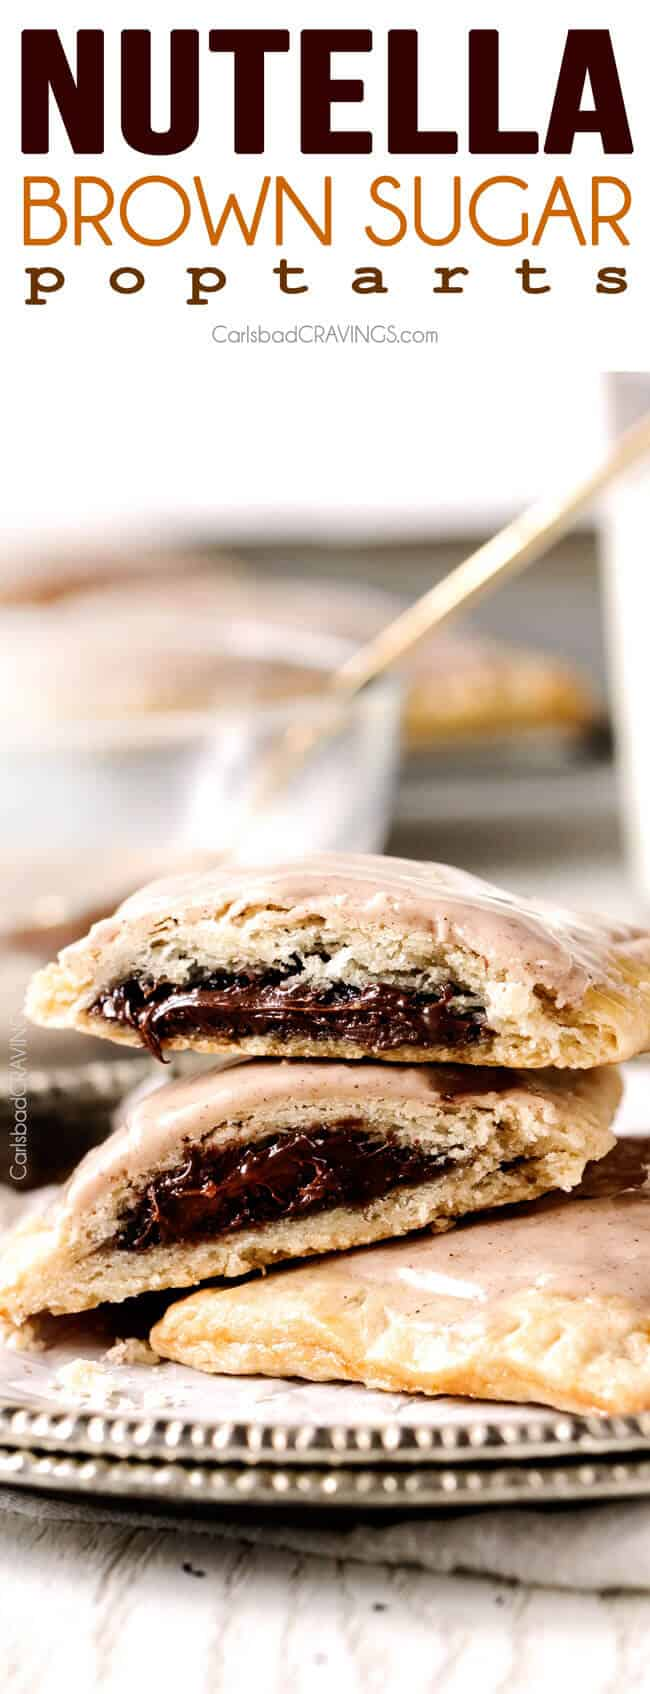 Melt in-your-mouth Nutella Brown Sugar Pop Tarts cocooned in buttery, flaky pastry smothered with Cinnamon Vanilla Icing are 1000X better than store-bought and so good you will never go back to the box kind again!